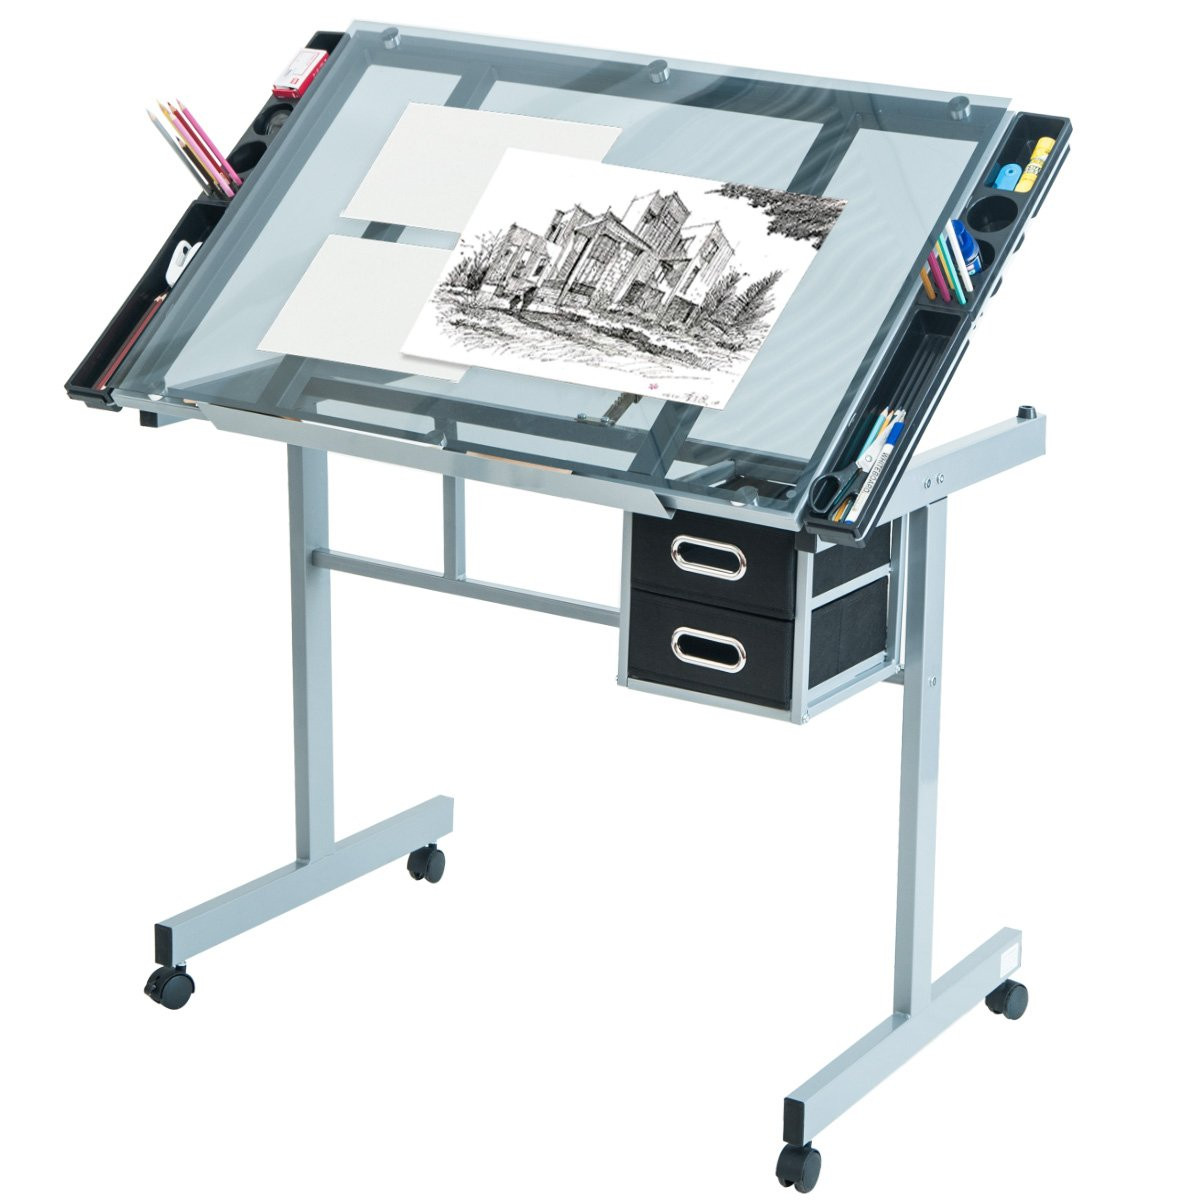 Harper&Bright Designs Adjustable Drafting Table Drawing Desk with Tempered Glass Top, Two Drawers and Castors by Harper&Bright Designs (Image #1)